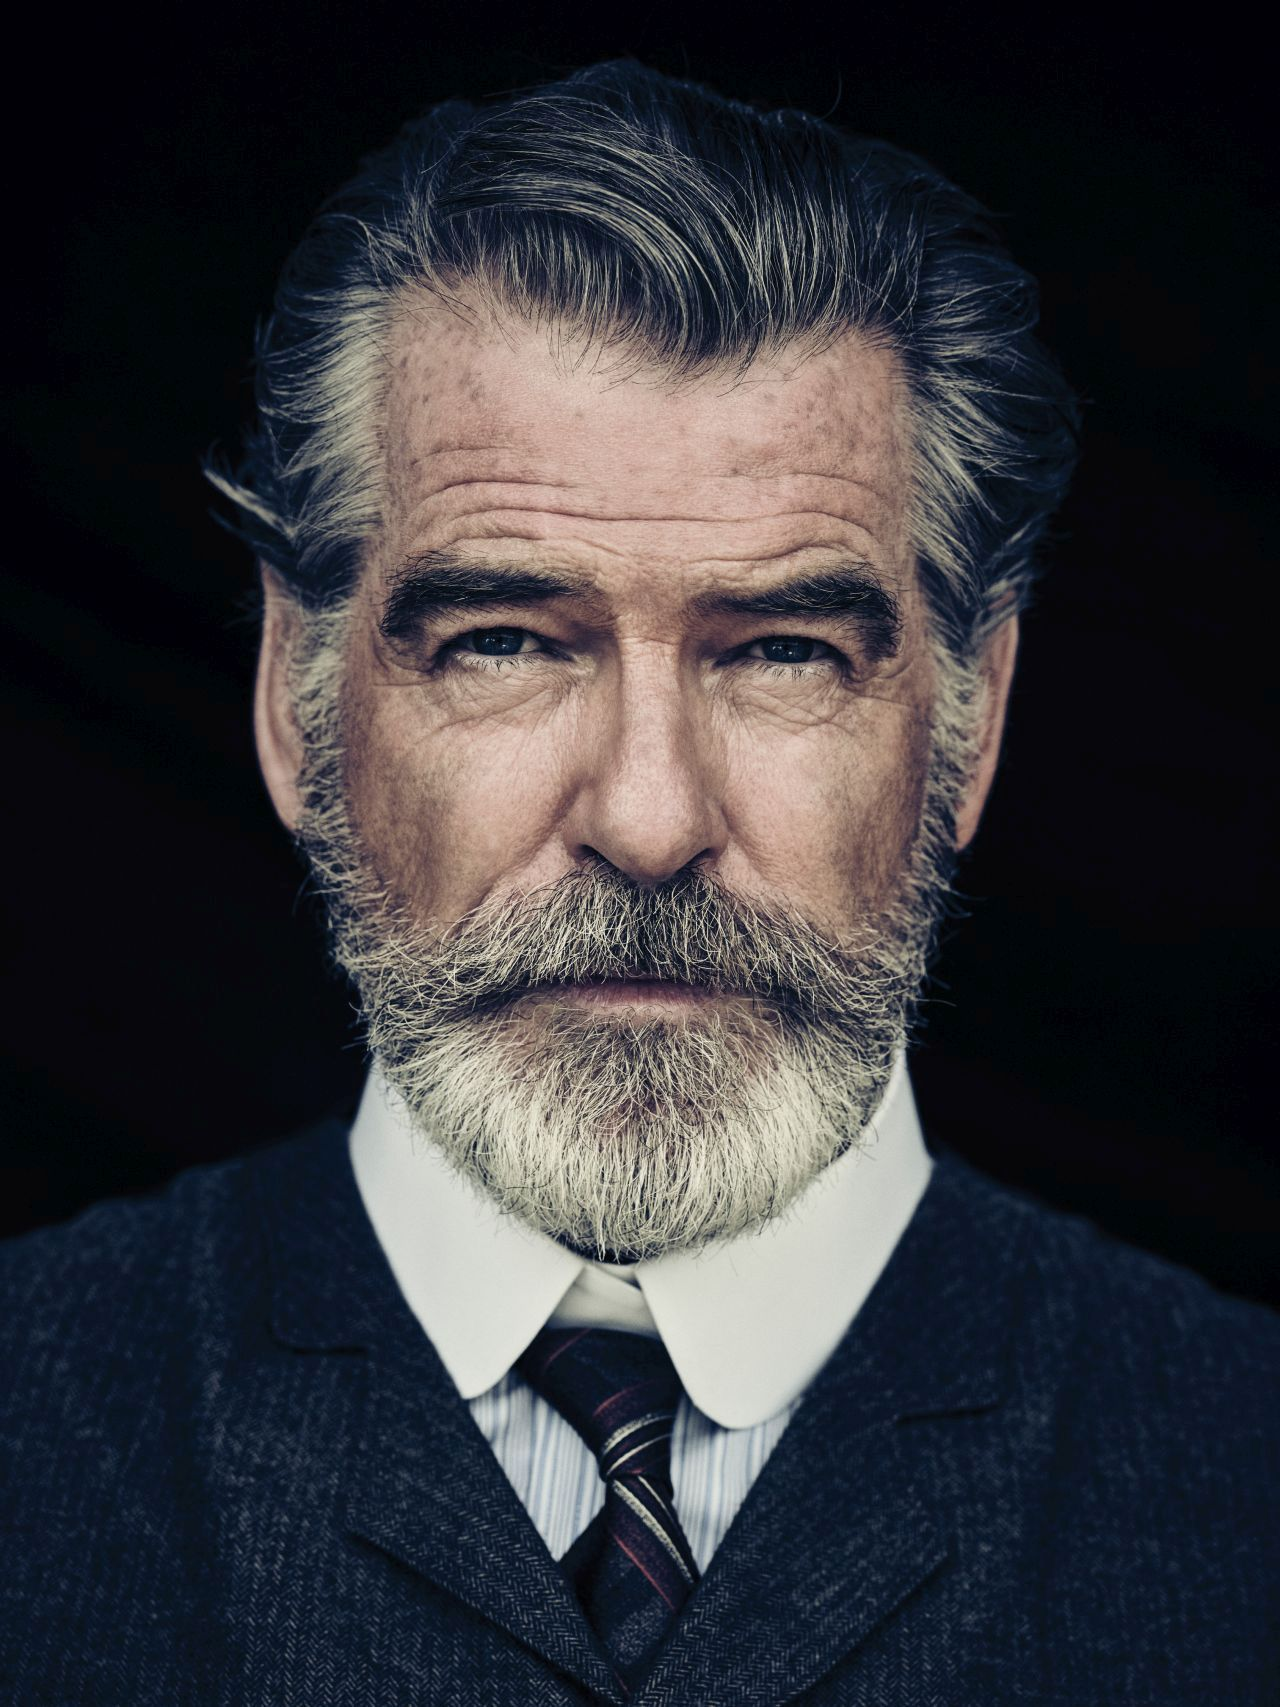 pierce brosnan jokes his wife is very fond of the beard he grew